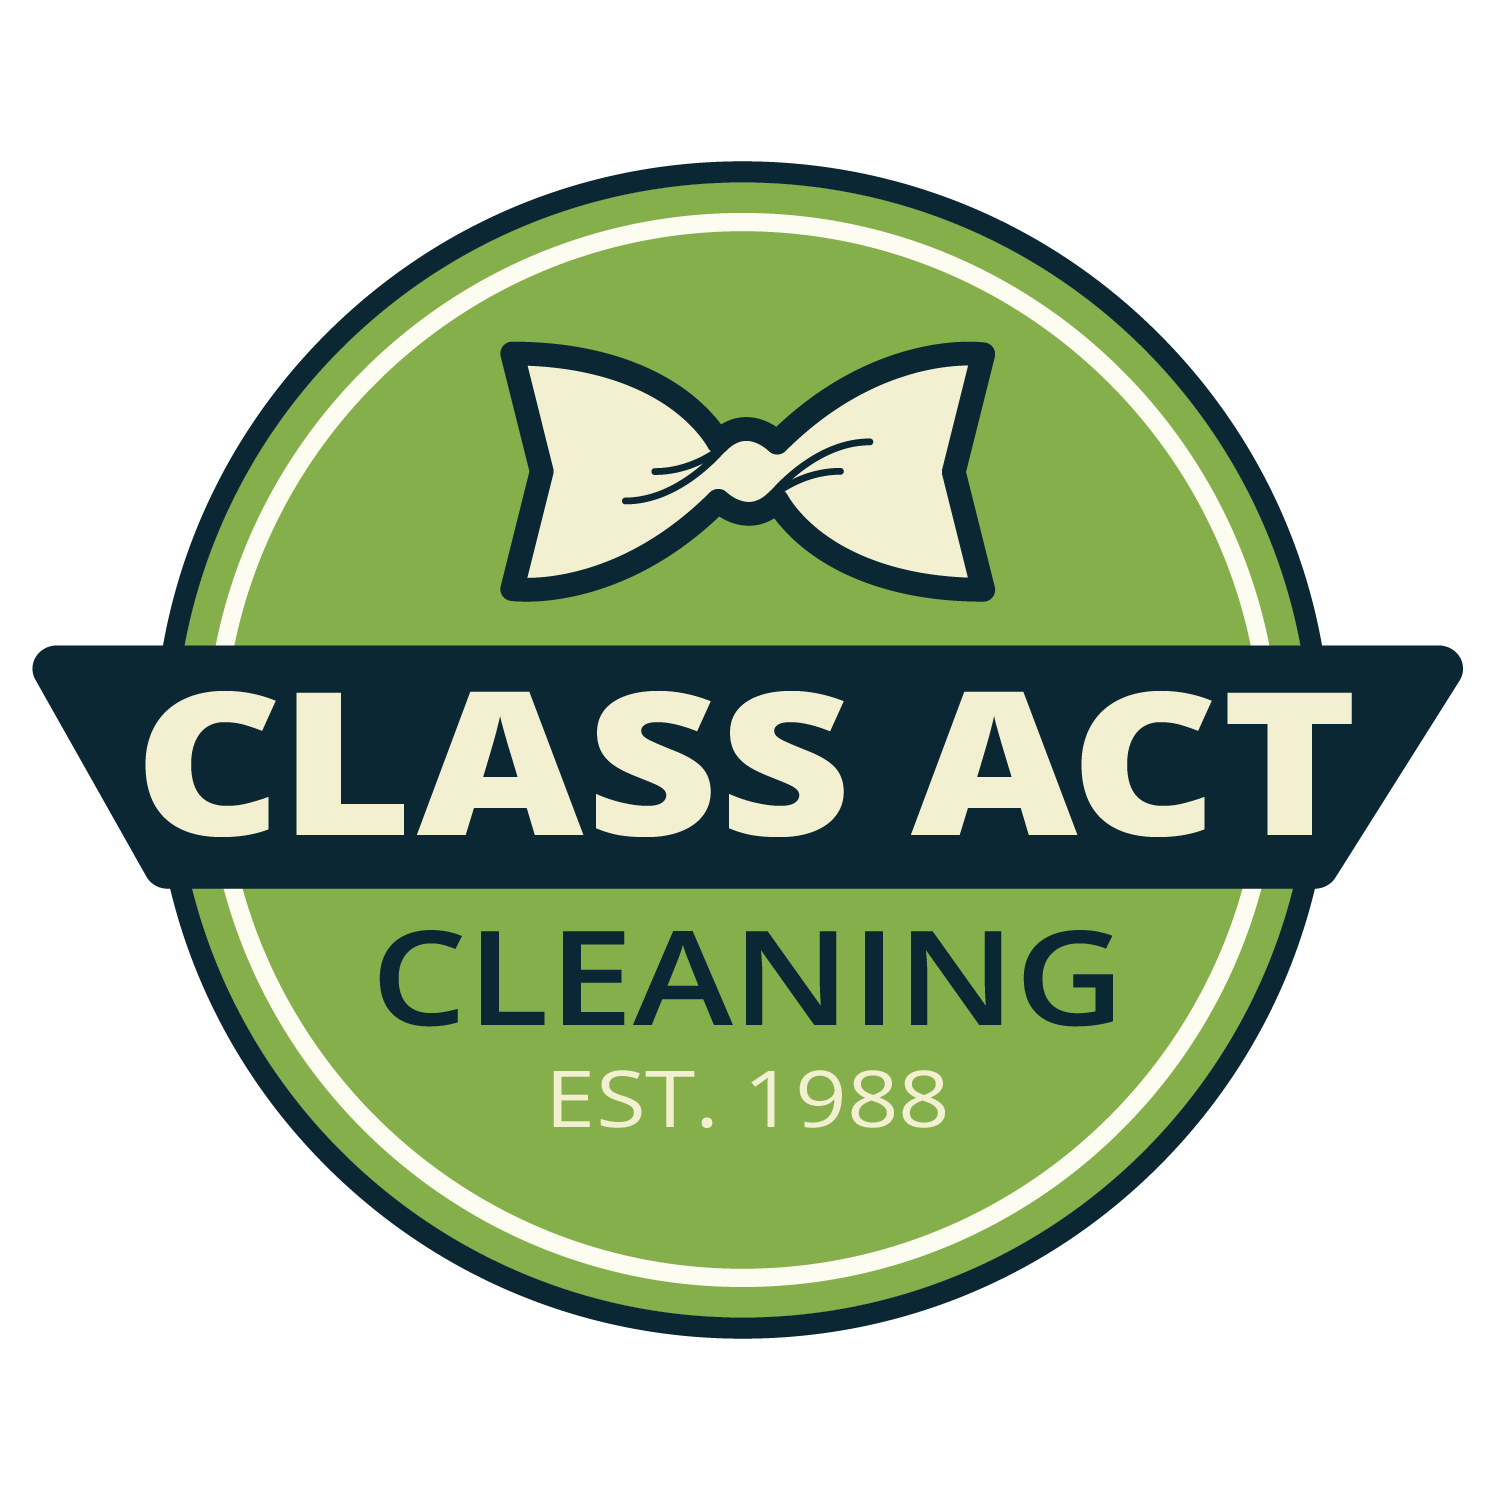 Class Act Cleaning